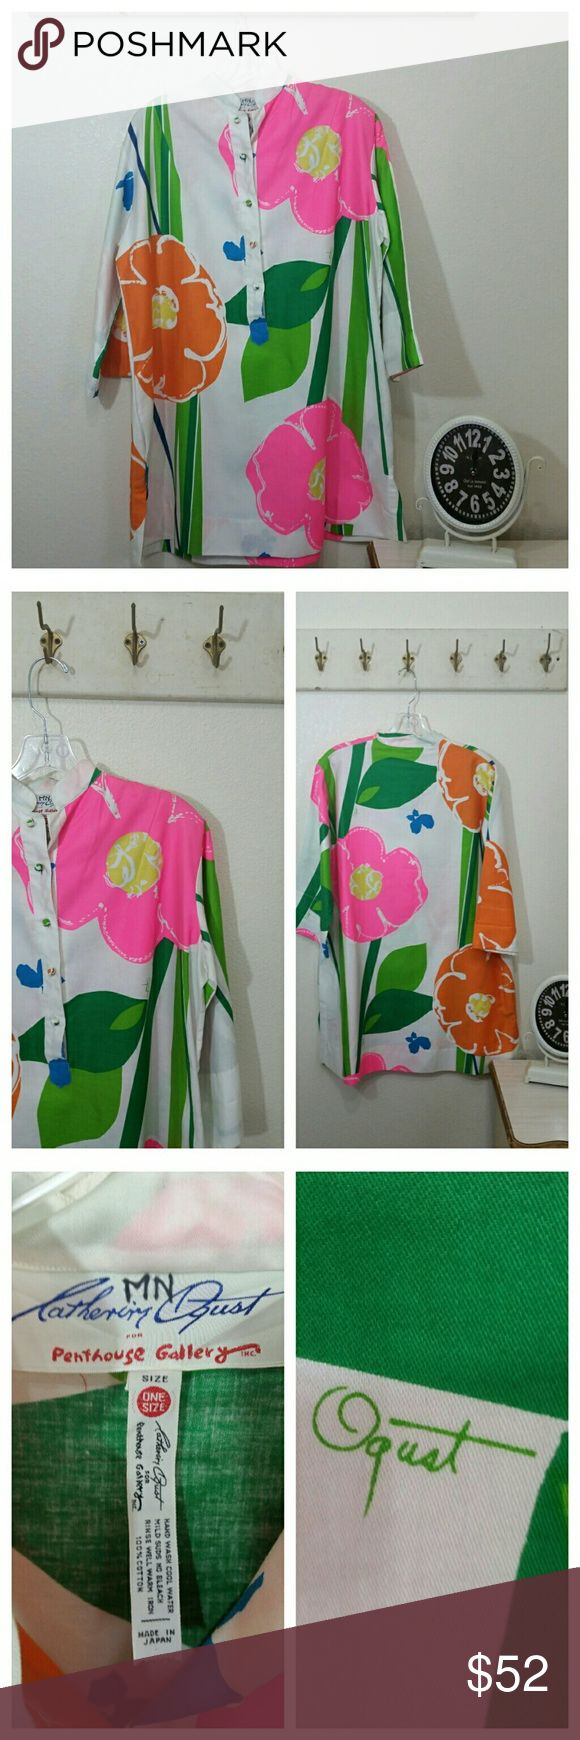 """Vintage Catherine Oquest colorful Tunic, 70s 3/4 Sleeve Tunic Cotton Buttons half down front Large bold floral print, signed fabric, Oquest  Catherine Oquest, for Penthouse Gallery  Label says One Size, see measurements  46 bust area 48"""" mid section 22""""  length  Very good vintage condition, bright colors. Vintage  Tops Tunics"""